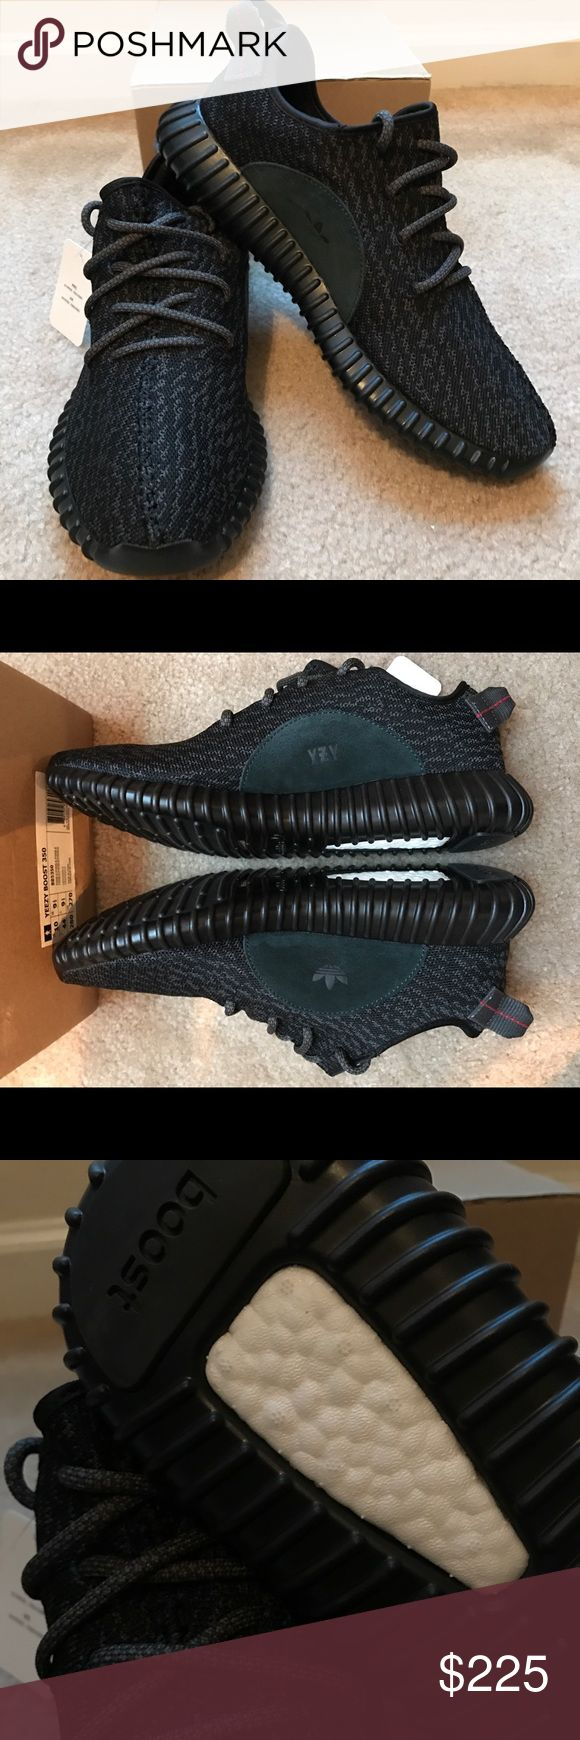 "Yeezy Boost 350 ""Pirate Black"" Yeezy Boost 350 ""Pirate Black""  Men's Size 10 UA Highest Quality, most comfortable shoes you'll find. Boost material is super soft and responsive. Comes with original box. Fast Shipping! Yeezy Shoes Athletic Shoes"